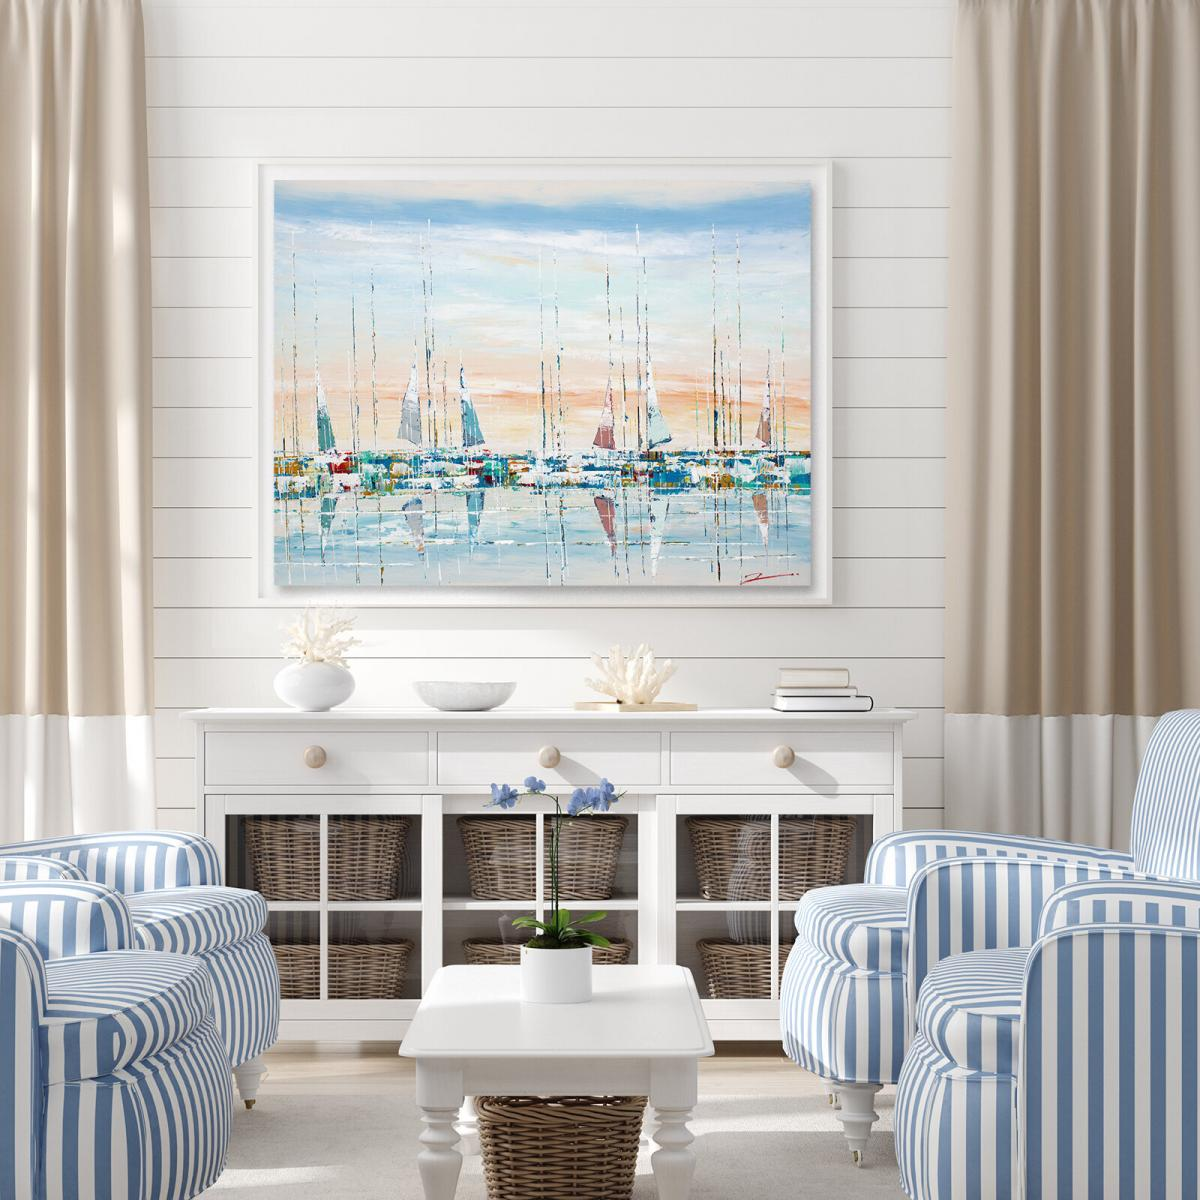 Sailing On a Summer Day 48x36